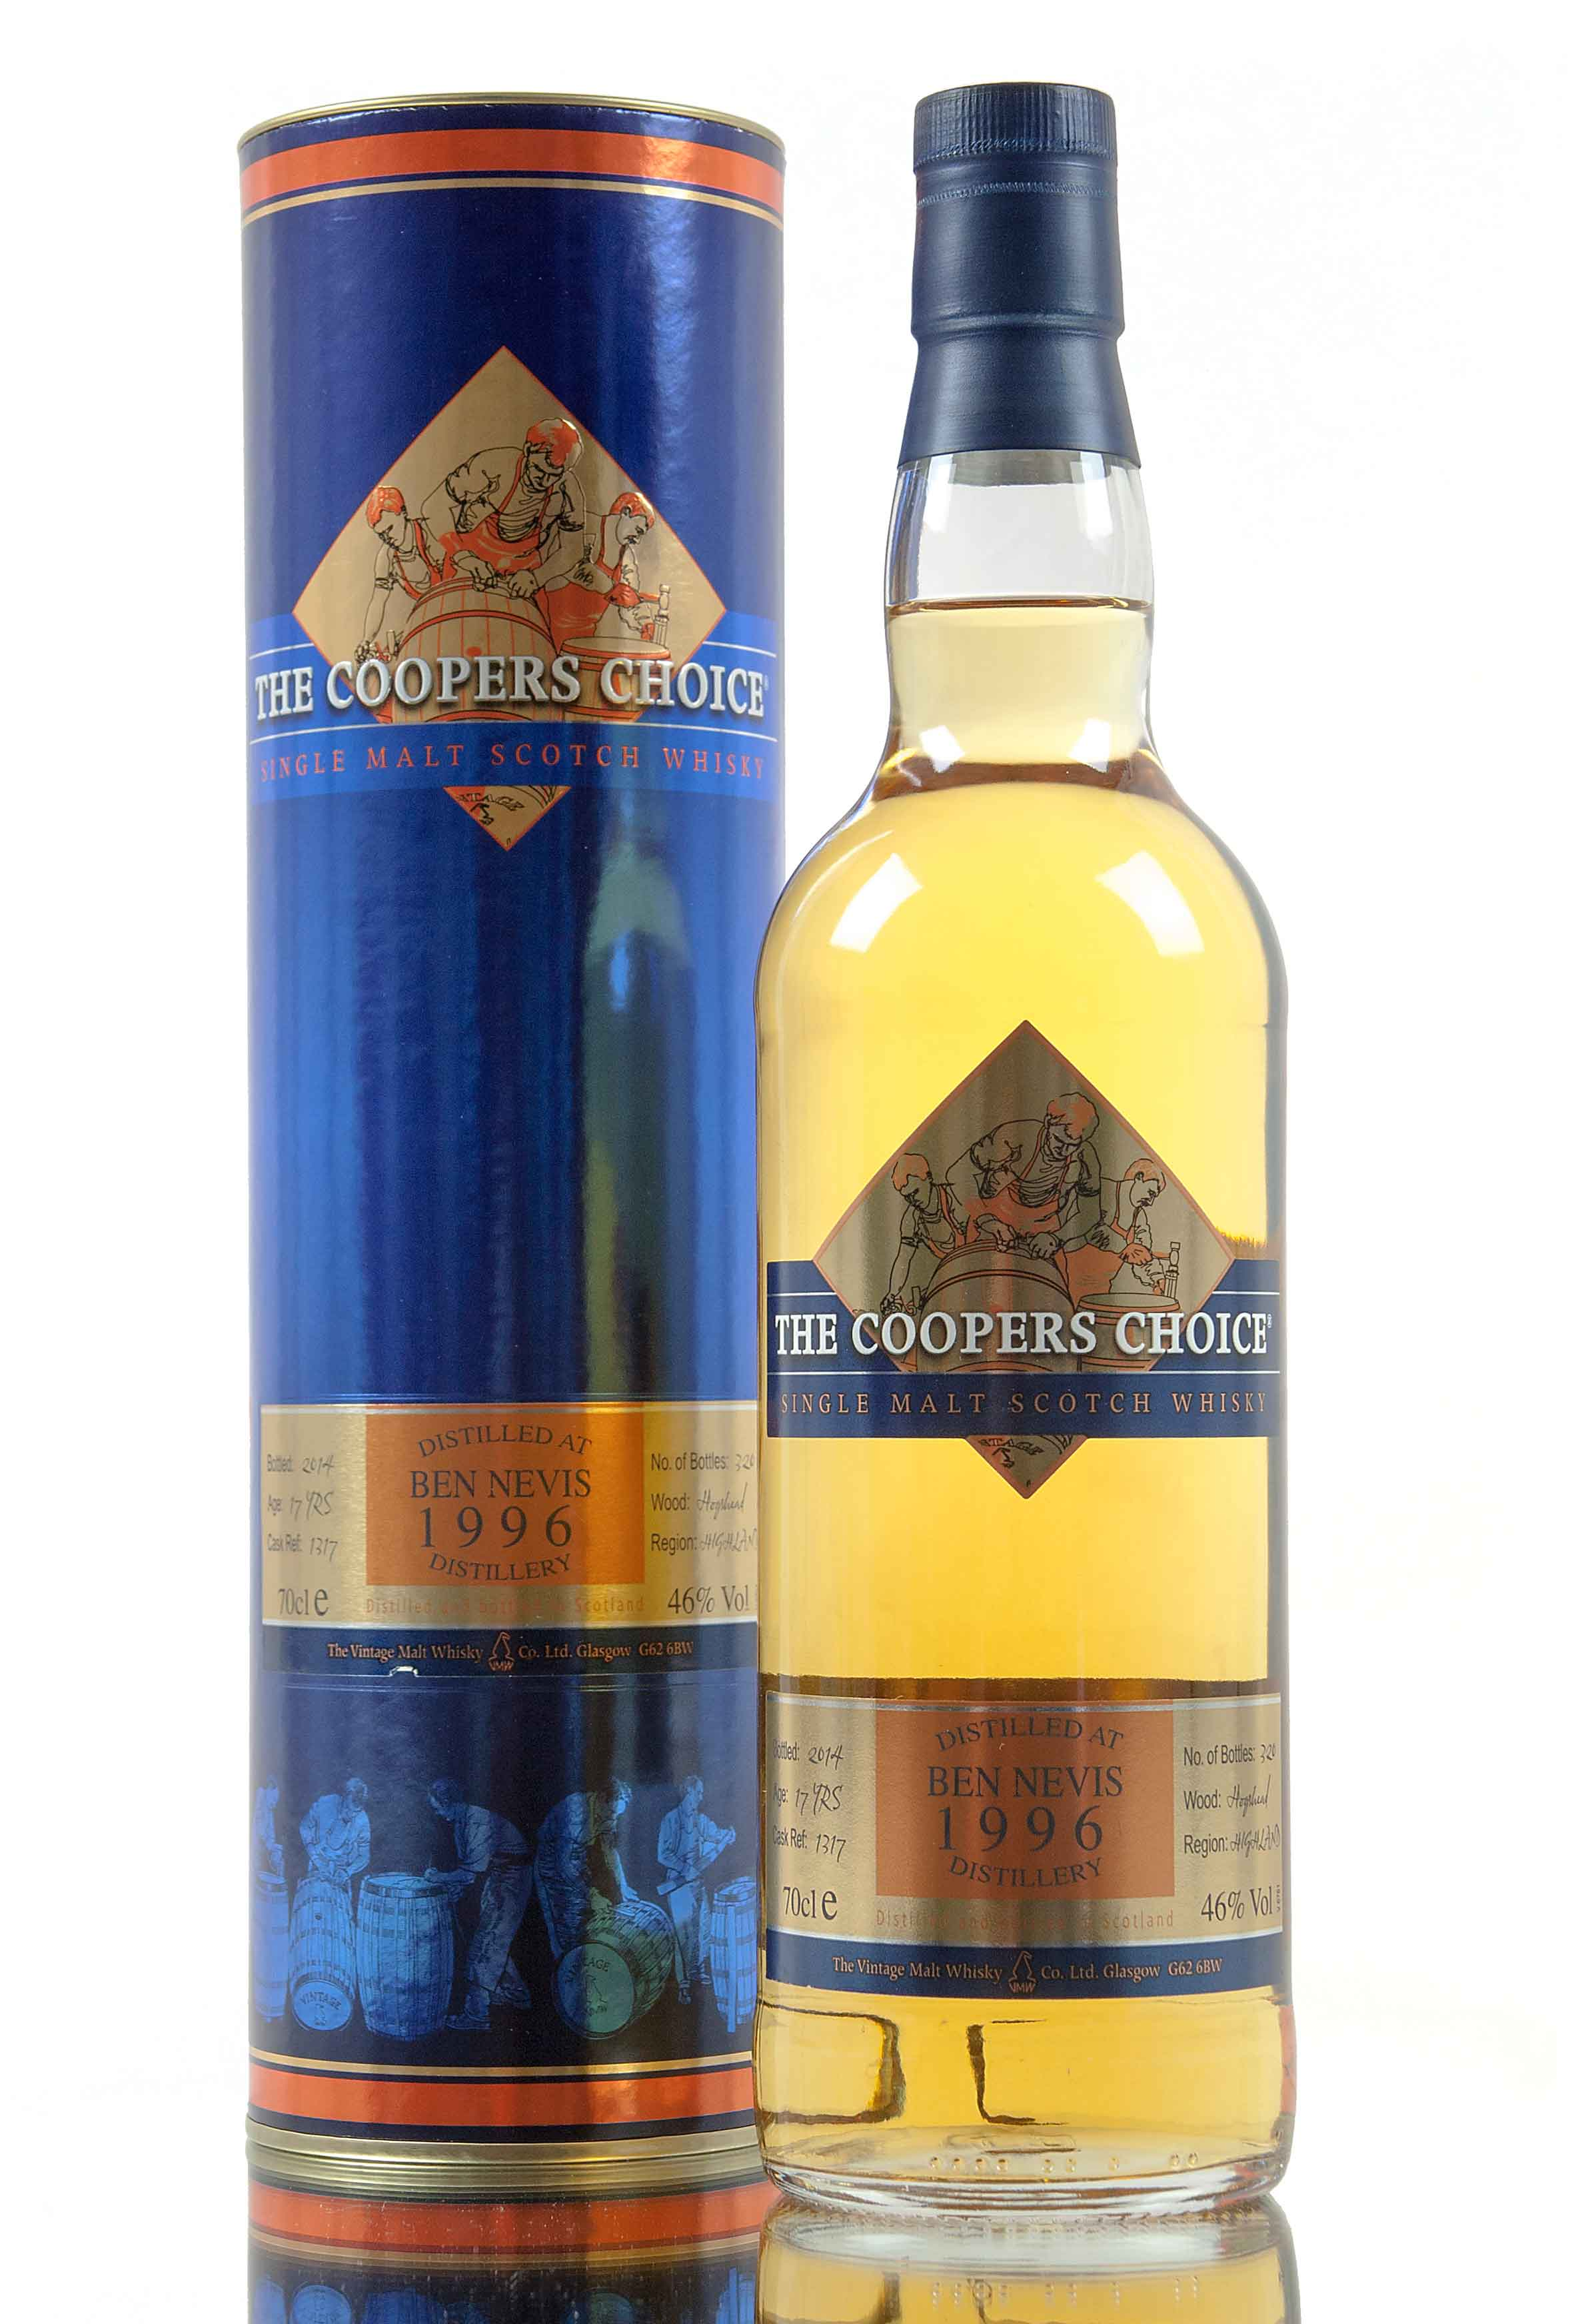 Ben Nevis 17 Year Old - 1996 / The Coopers Choice / Cask 1317